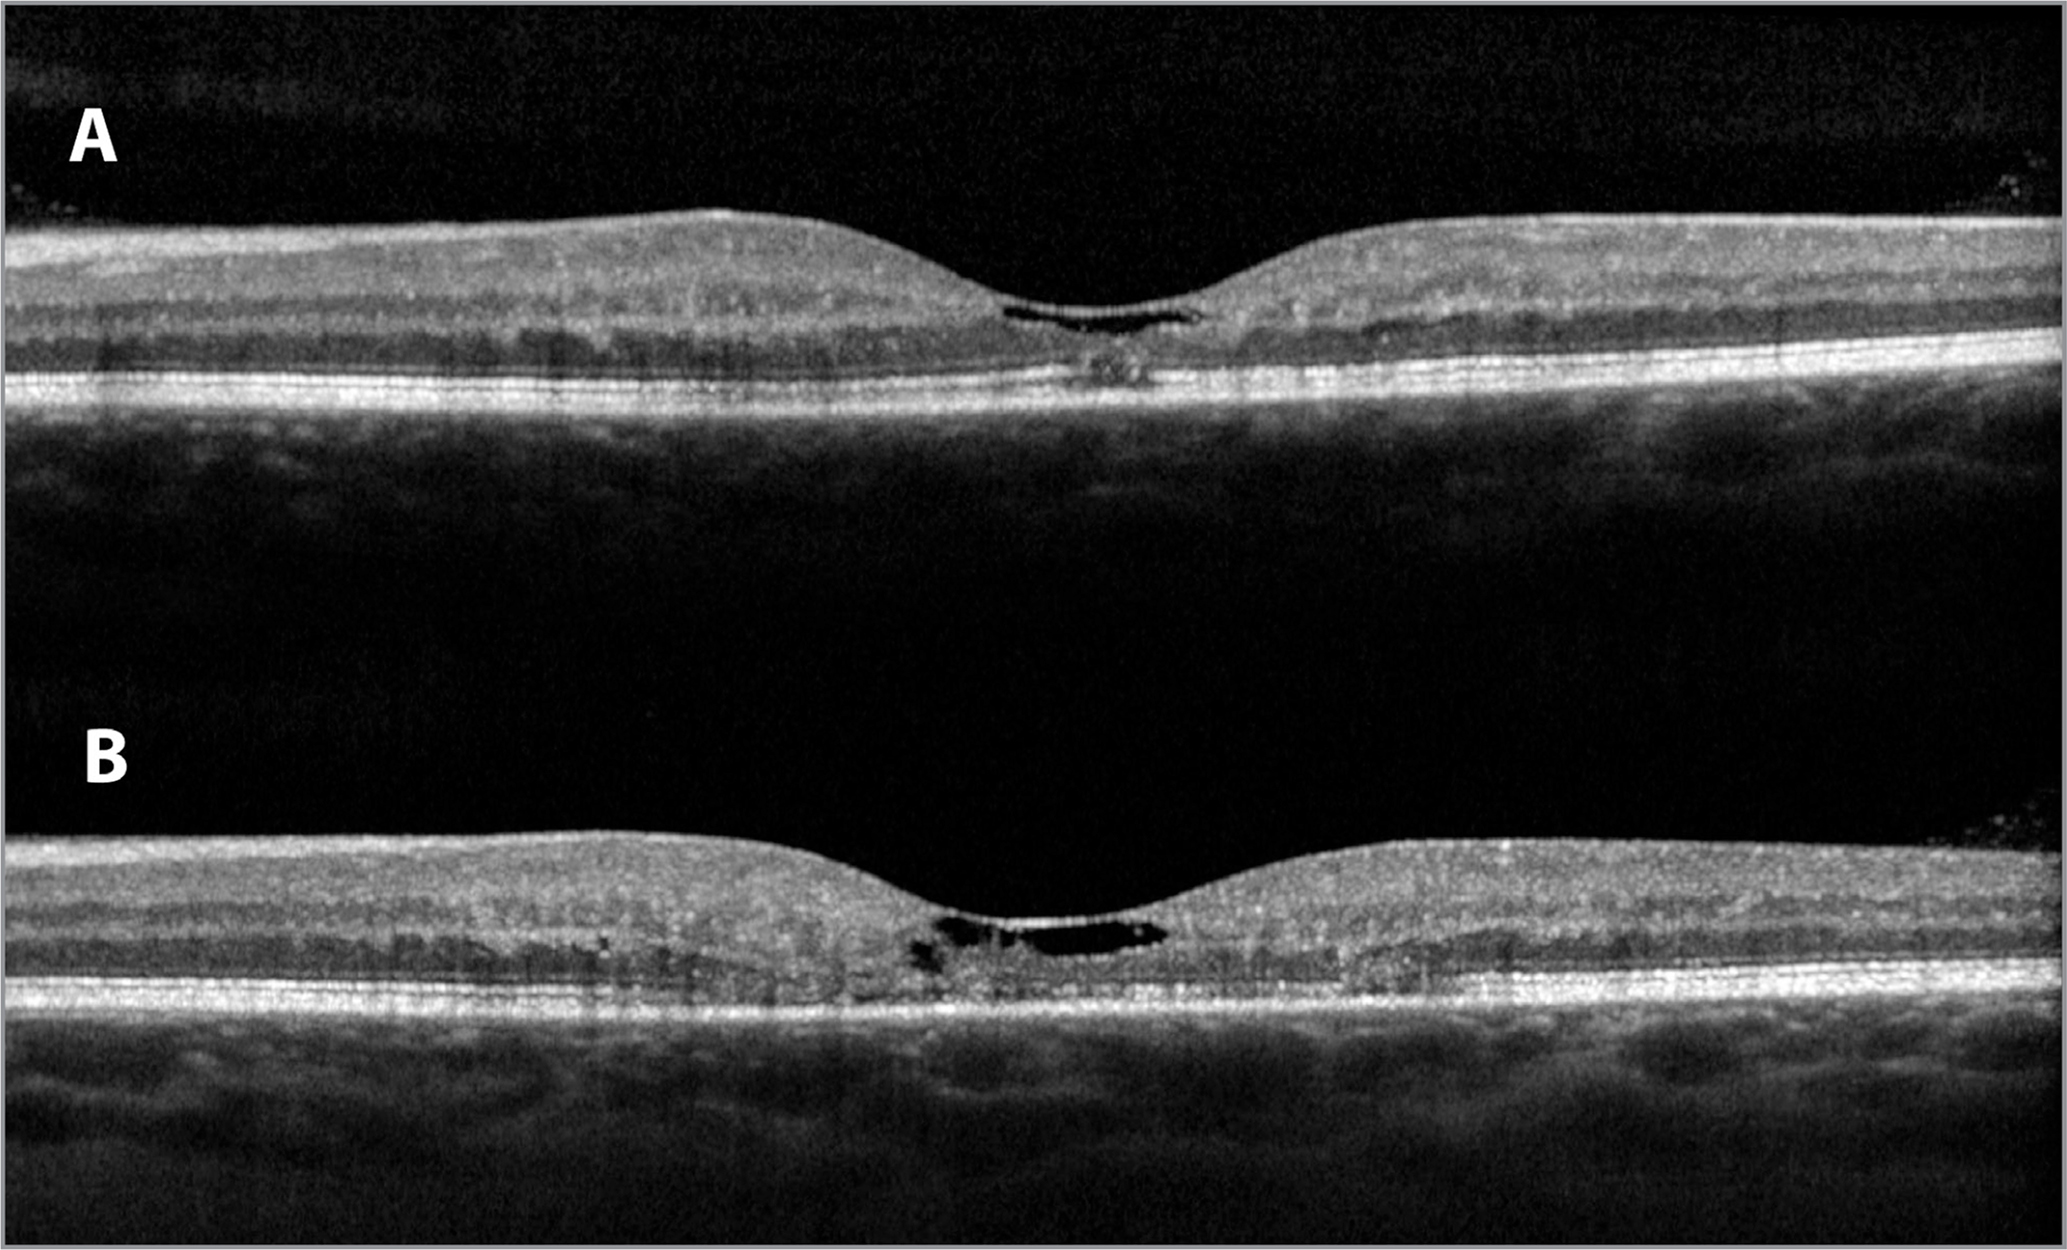 Optical coherence tomography line scans of the eye shown in Figure 2 showing progression over time. (A) A small region of only focal attenuation (relative hyporeflectivity) of the ellipsoid zone band is visible subfoveally at the time of imaging shown in Figure 2. Hyporeflective cavitation, which can be present early or late in disease, is present in the inner retina at the fovea, with still-intact internal limiting membrane. (B) Four years later, the area of ellipsoid zone disruption is much more extensive. Inner retinal cavitation is more prominent. Worsening in this case is rapid compared with most eyes with the disease.